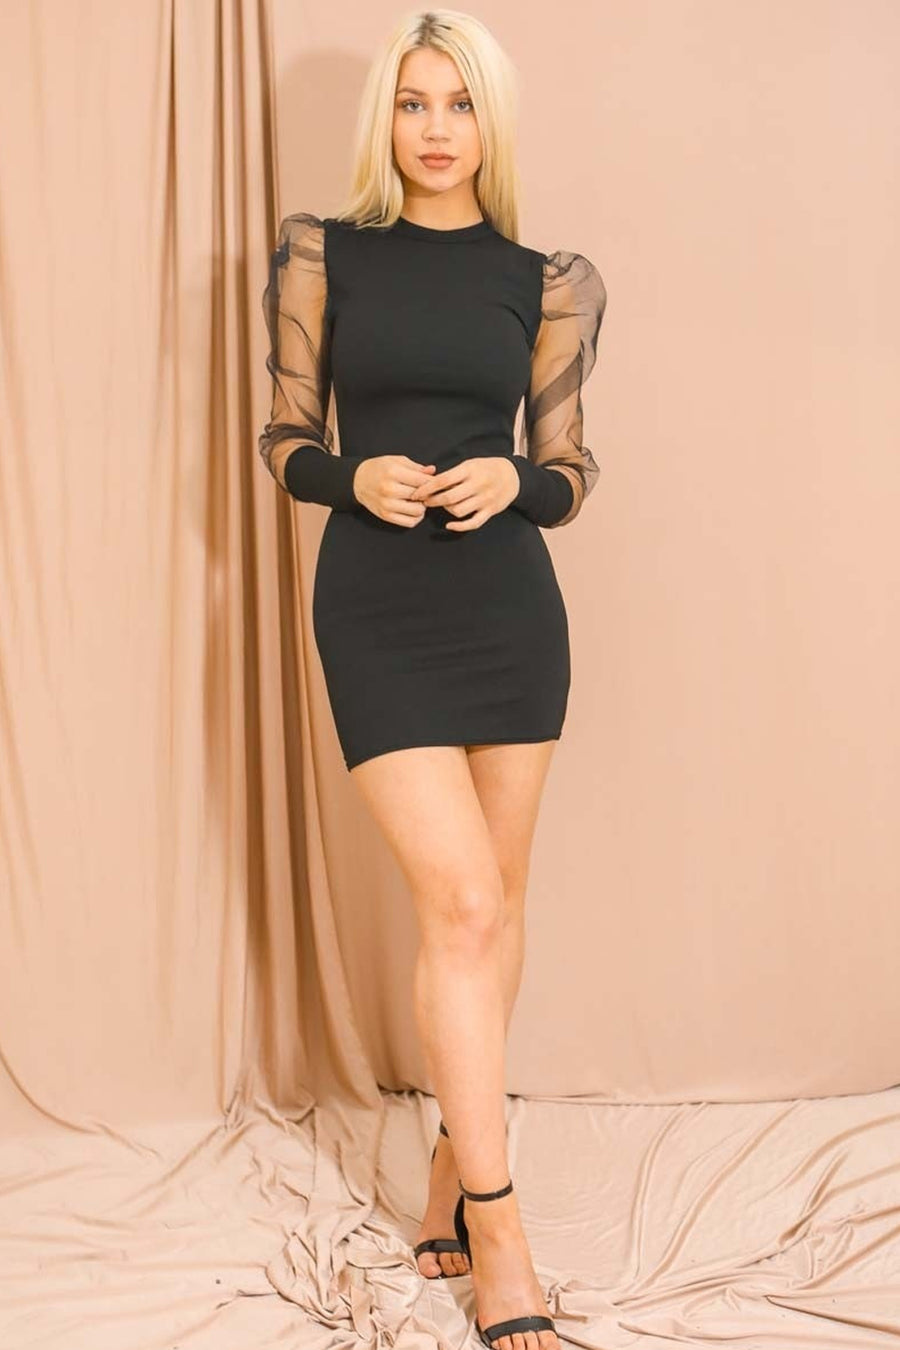 Black Fishnet Sleeve Bodycon Dress - Austin